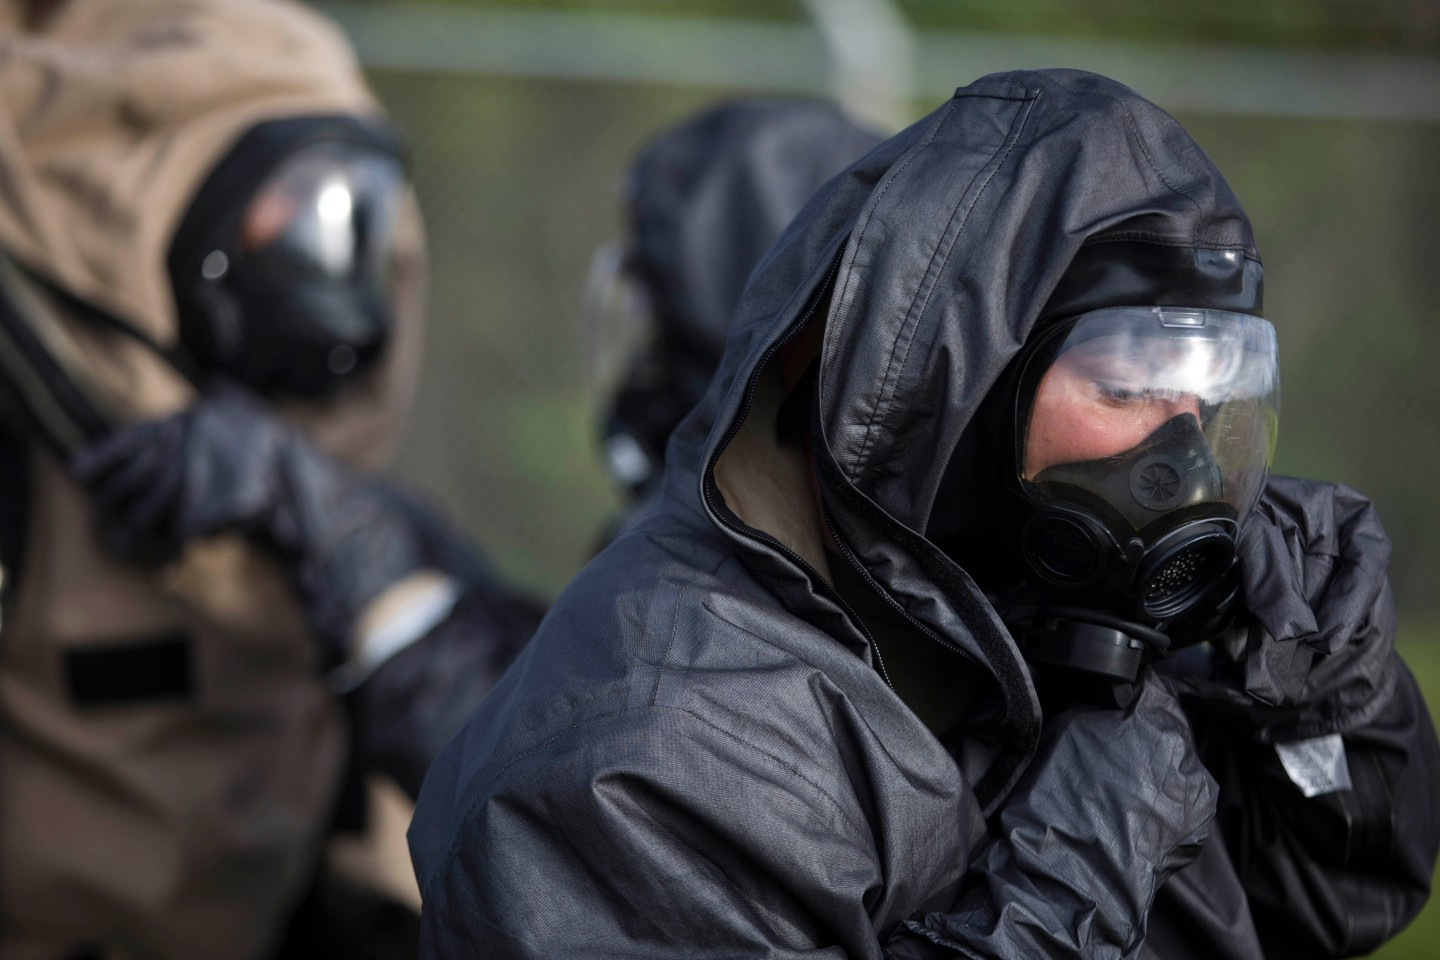 U.S. Marine, Chemical Biological Radiological Nuclear (CBRN) Defense Specialists from the 31st Marine Expeditionary Unit conduct a training exercise on Camp Hansen, Okinawa, Japan, July 30, 2014. CBRN's mission is to locate, test and contain hazardous materials or gasses to further protect U.S. Forces. (U.S. Marine Corps Photo by Lance Cpl. Brian Bekkala/ Released)